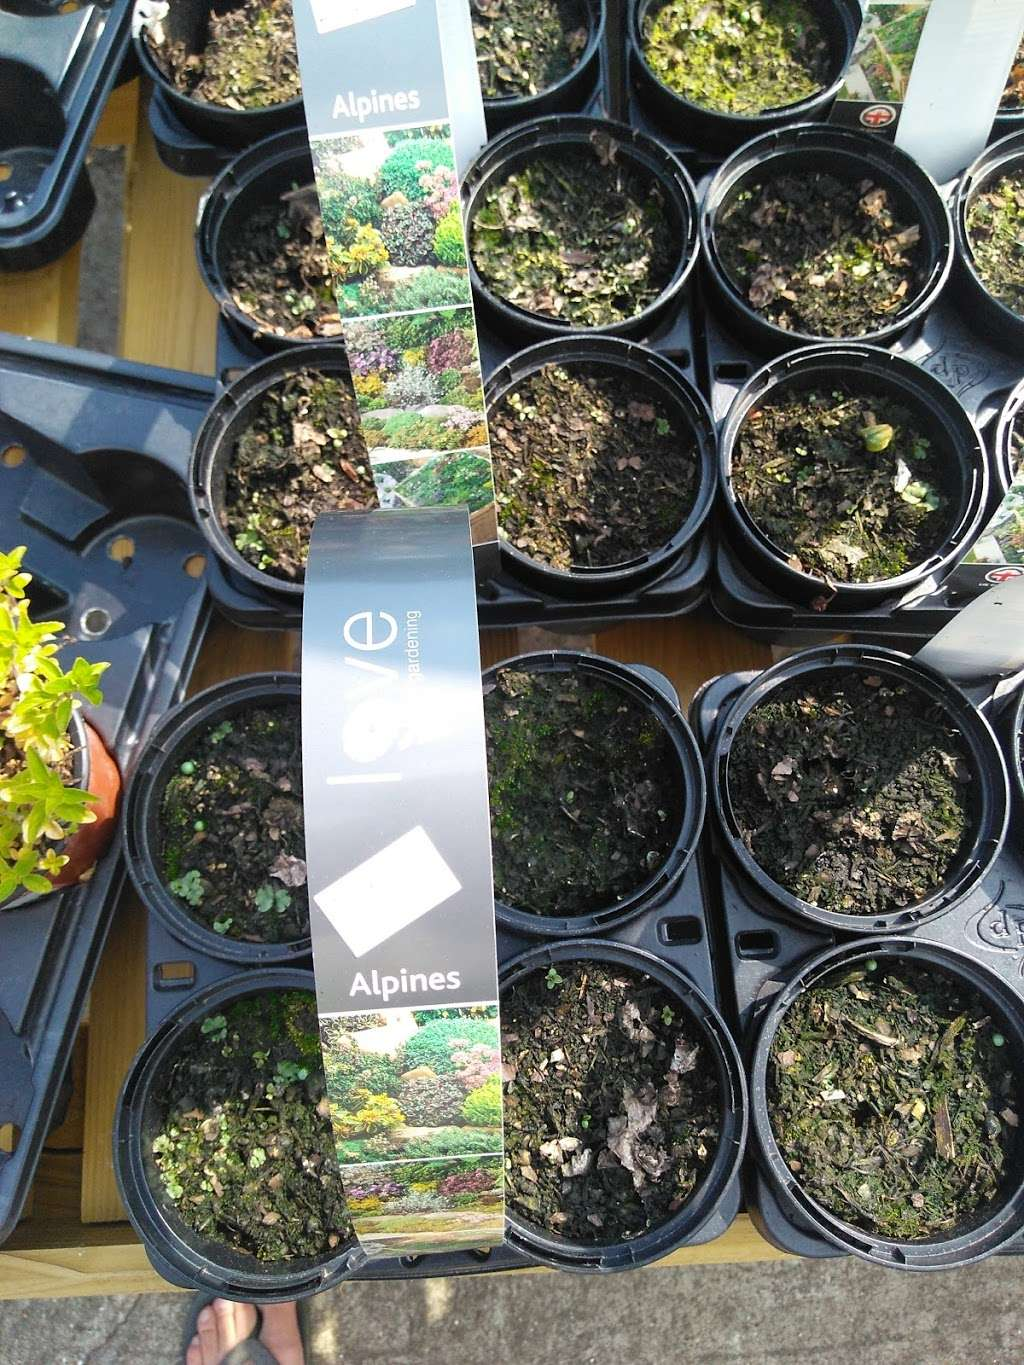 Buckland Nurseries Garden Centre - store  | Photo 3 of 10 | Address: Reigate Rd, Reigate, Betchworth RH2 9RE, UK | Phone: 01737 242990